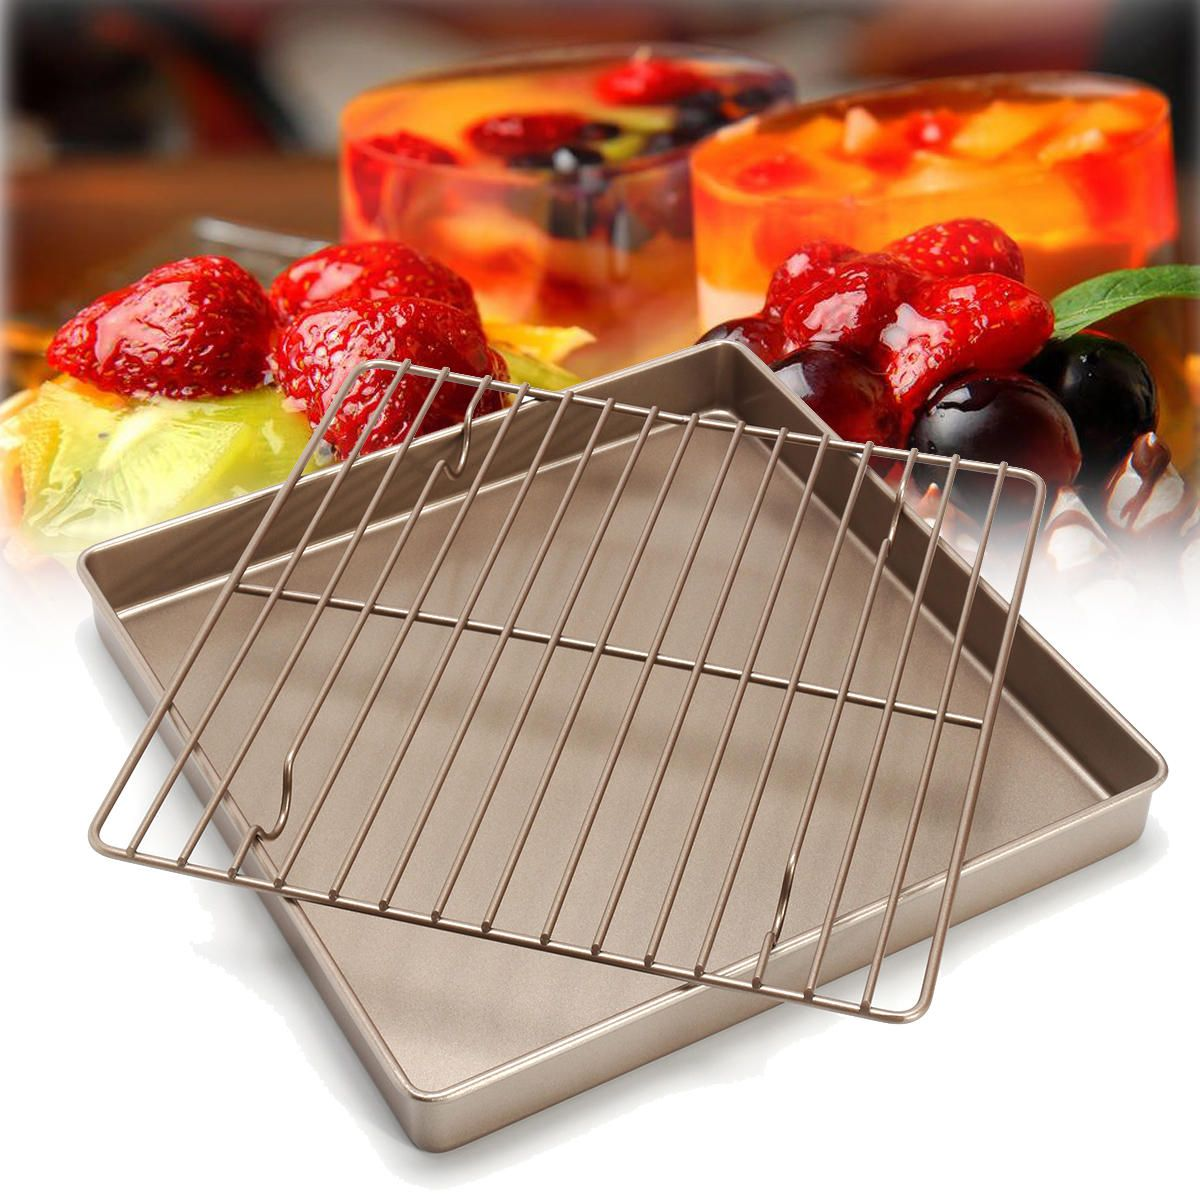 11 Golden Square Kitchen Cooling Rack Bread Holder Stand Baking